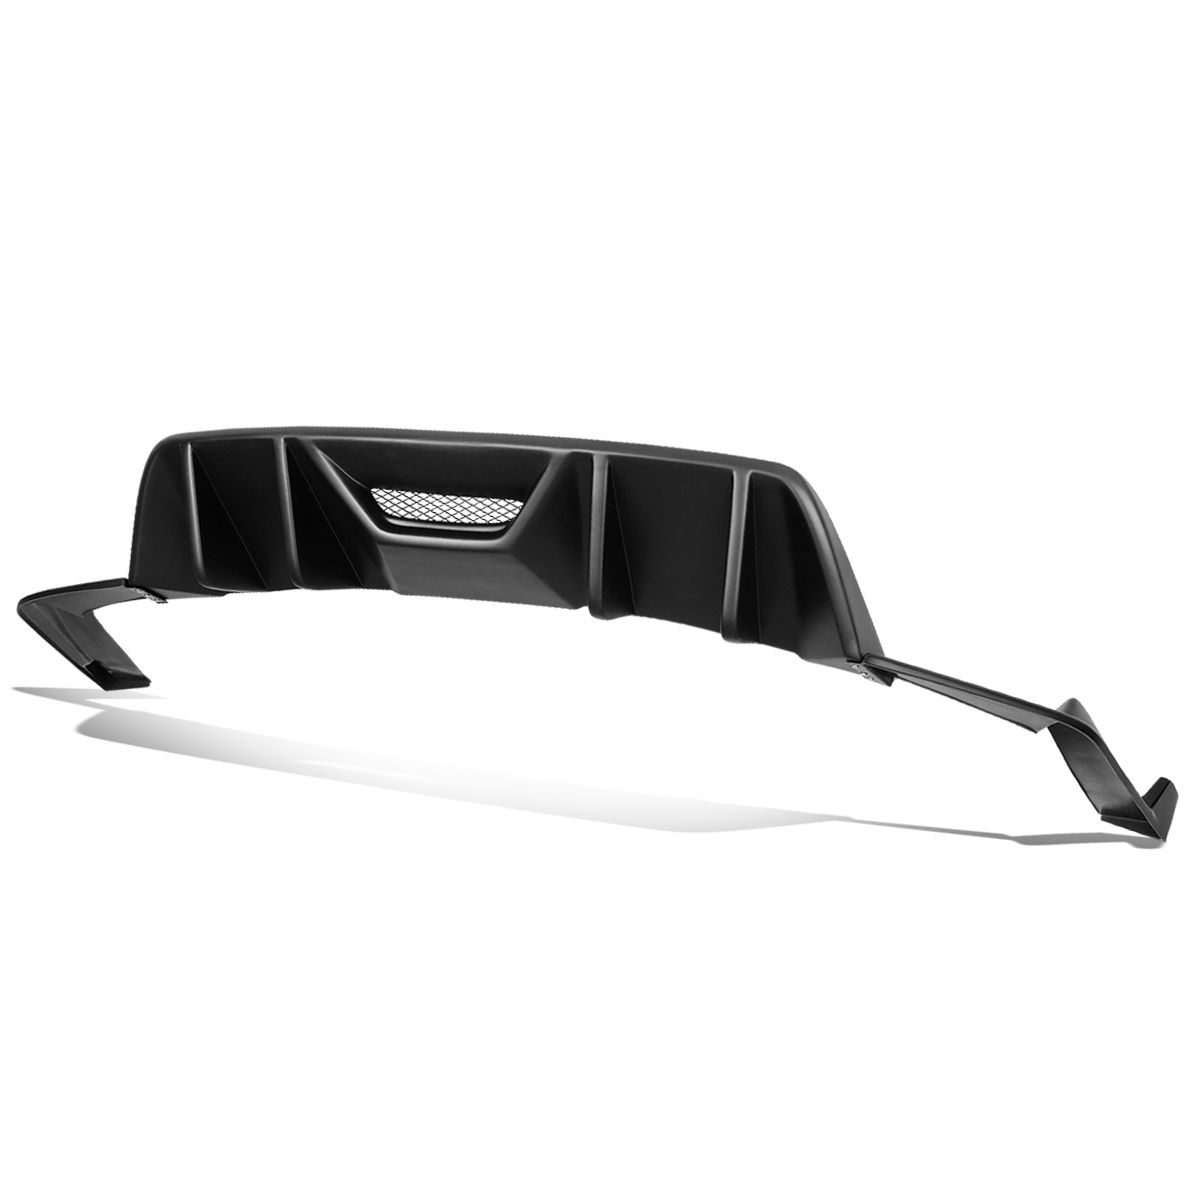 Fit 2015-2017 Ford Mustang ABS Quad Fin Rear Diffuser+Pair Side Valence Body Kit